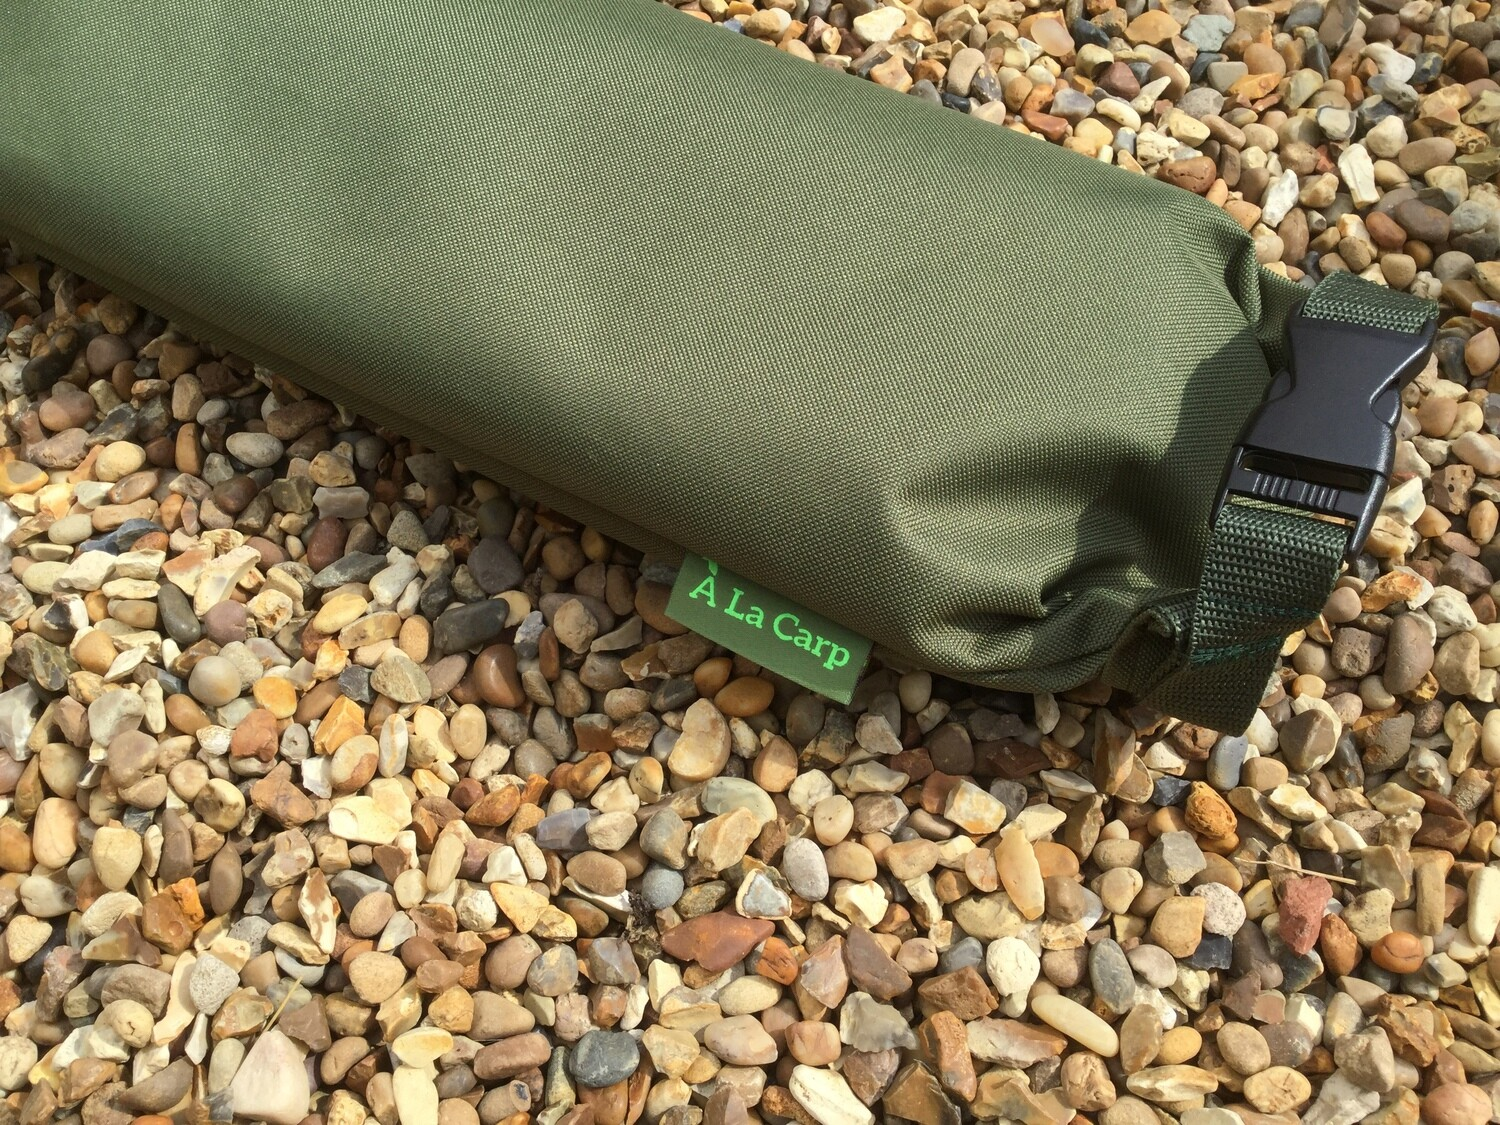 `A La Carp Heavy duty retention/ weigh sling stink sleeve ( 137 cm x 18 cm) MADE IN GREAT BRITAIN Free UK Delivery